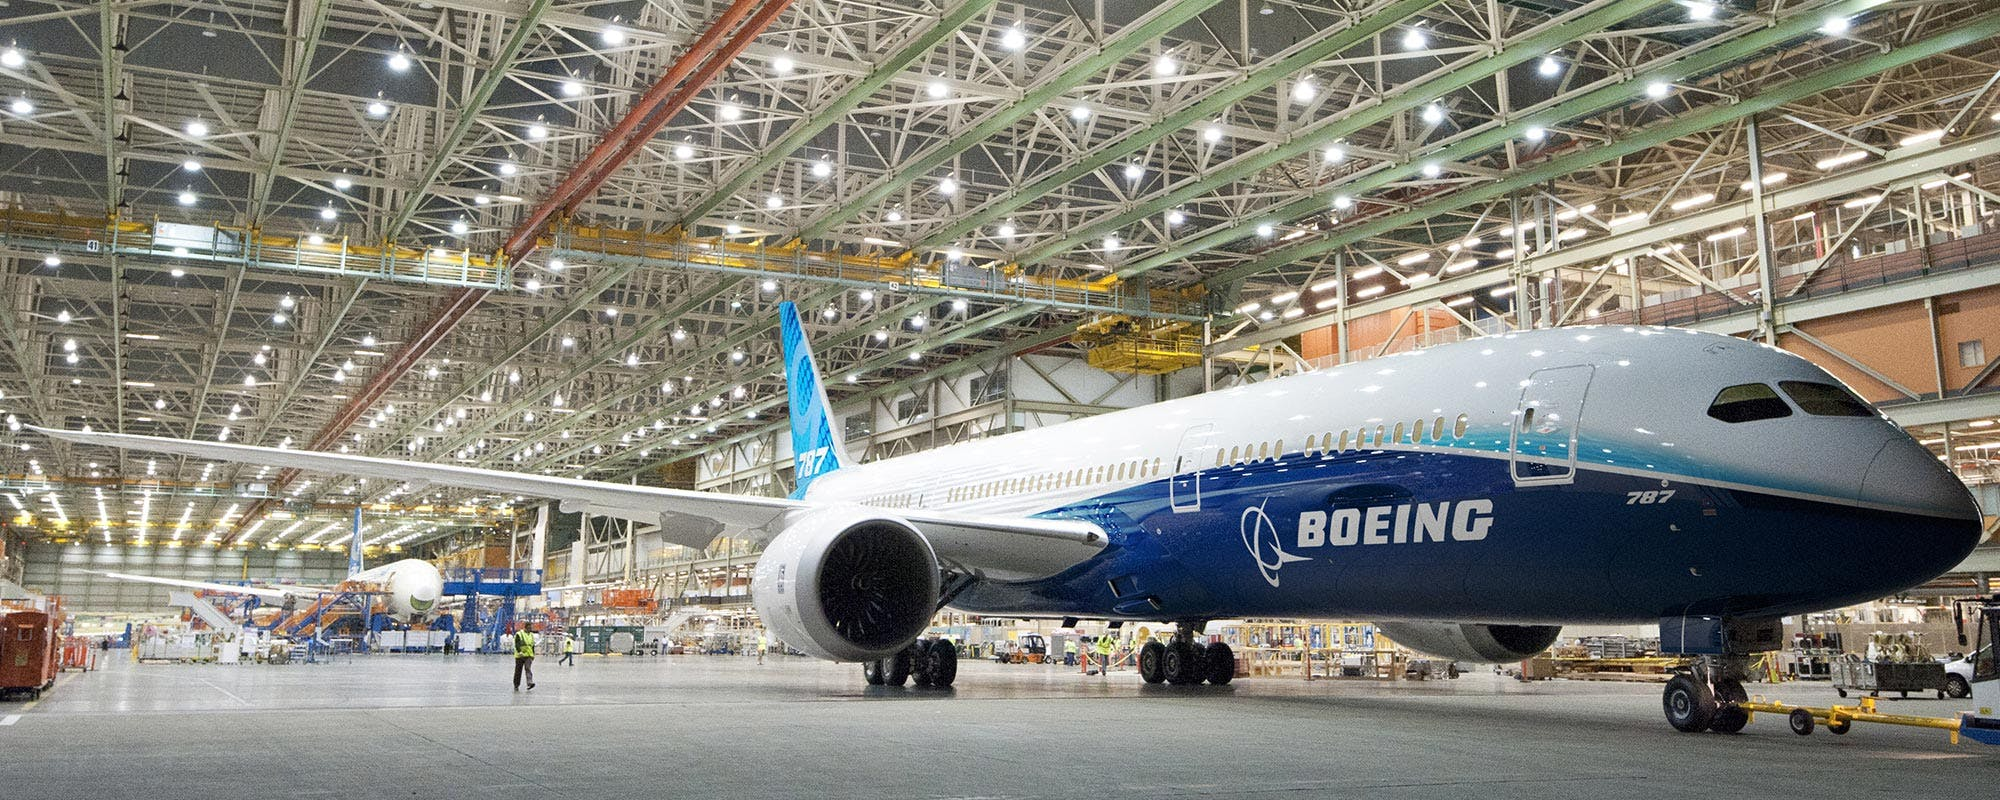 Vist Boeing Future of Flight